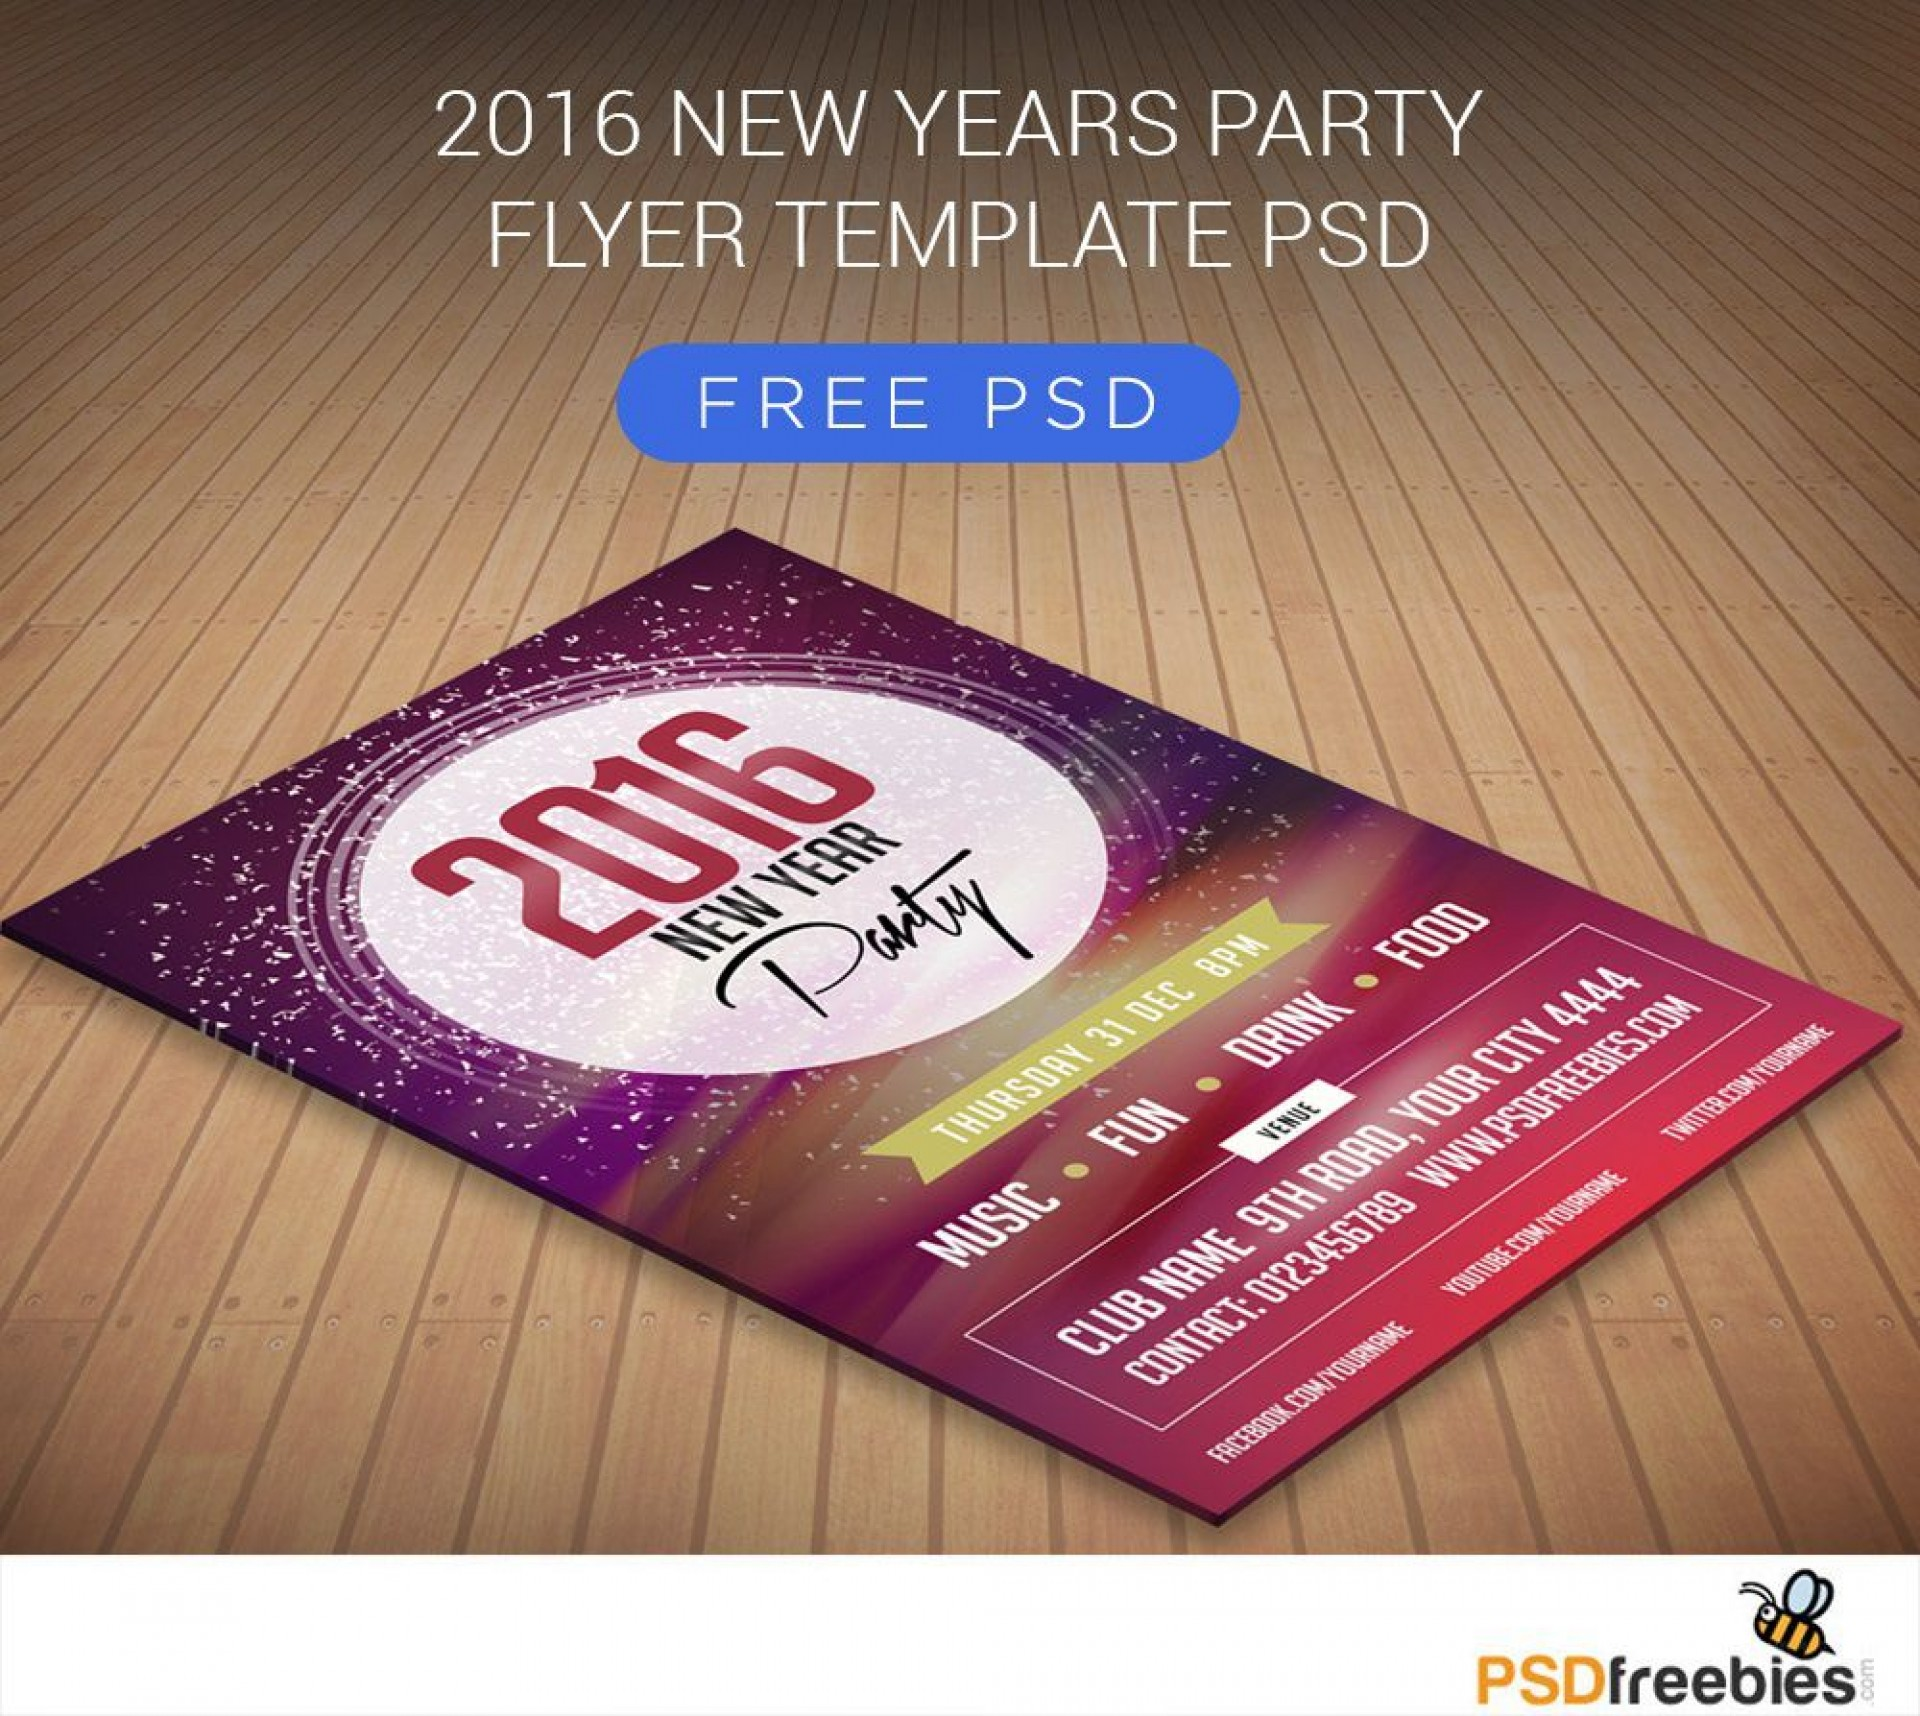 001 Shocking Free Psd Party Flyer Template Download Highest Clarity  - Neon Glow Rave1920